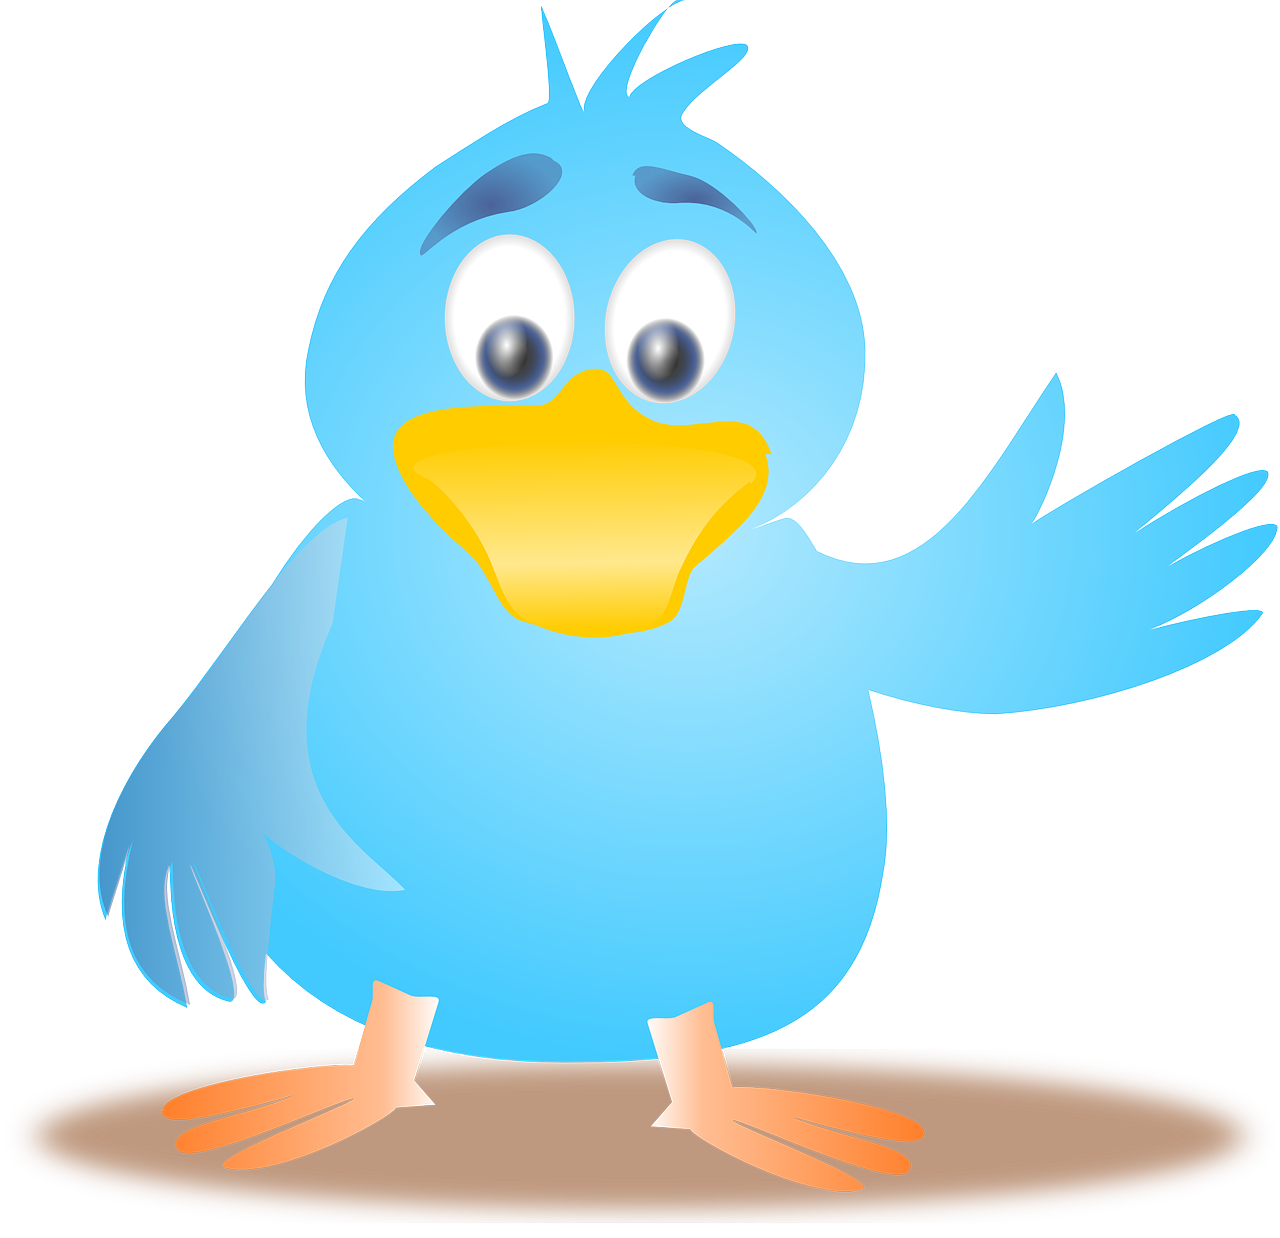 twitter,bird,tweet,waving,happy,blue,free vector graphics,free pictures, free photos, free images, royalty free, free illustrations, public domain